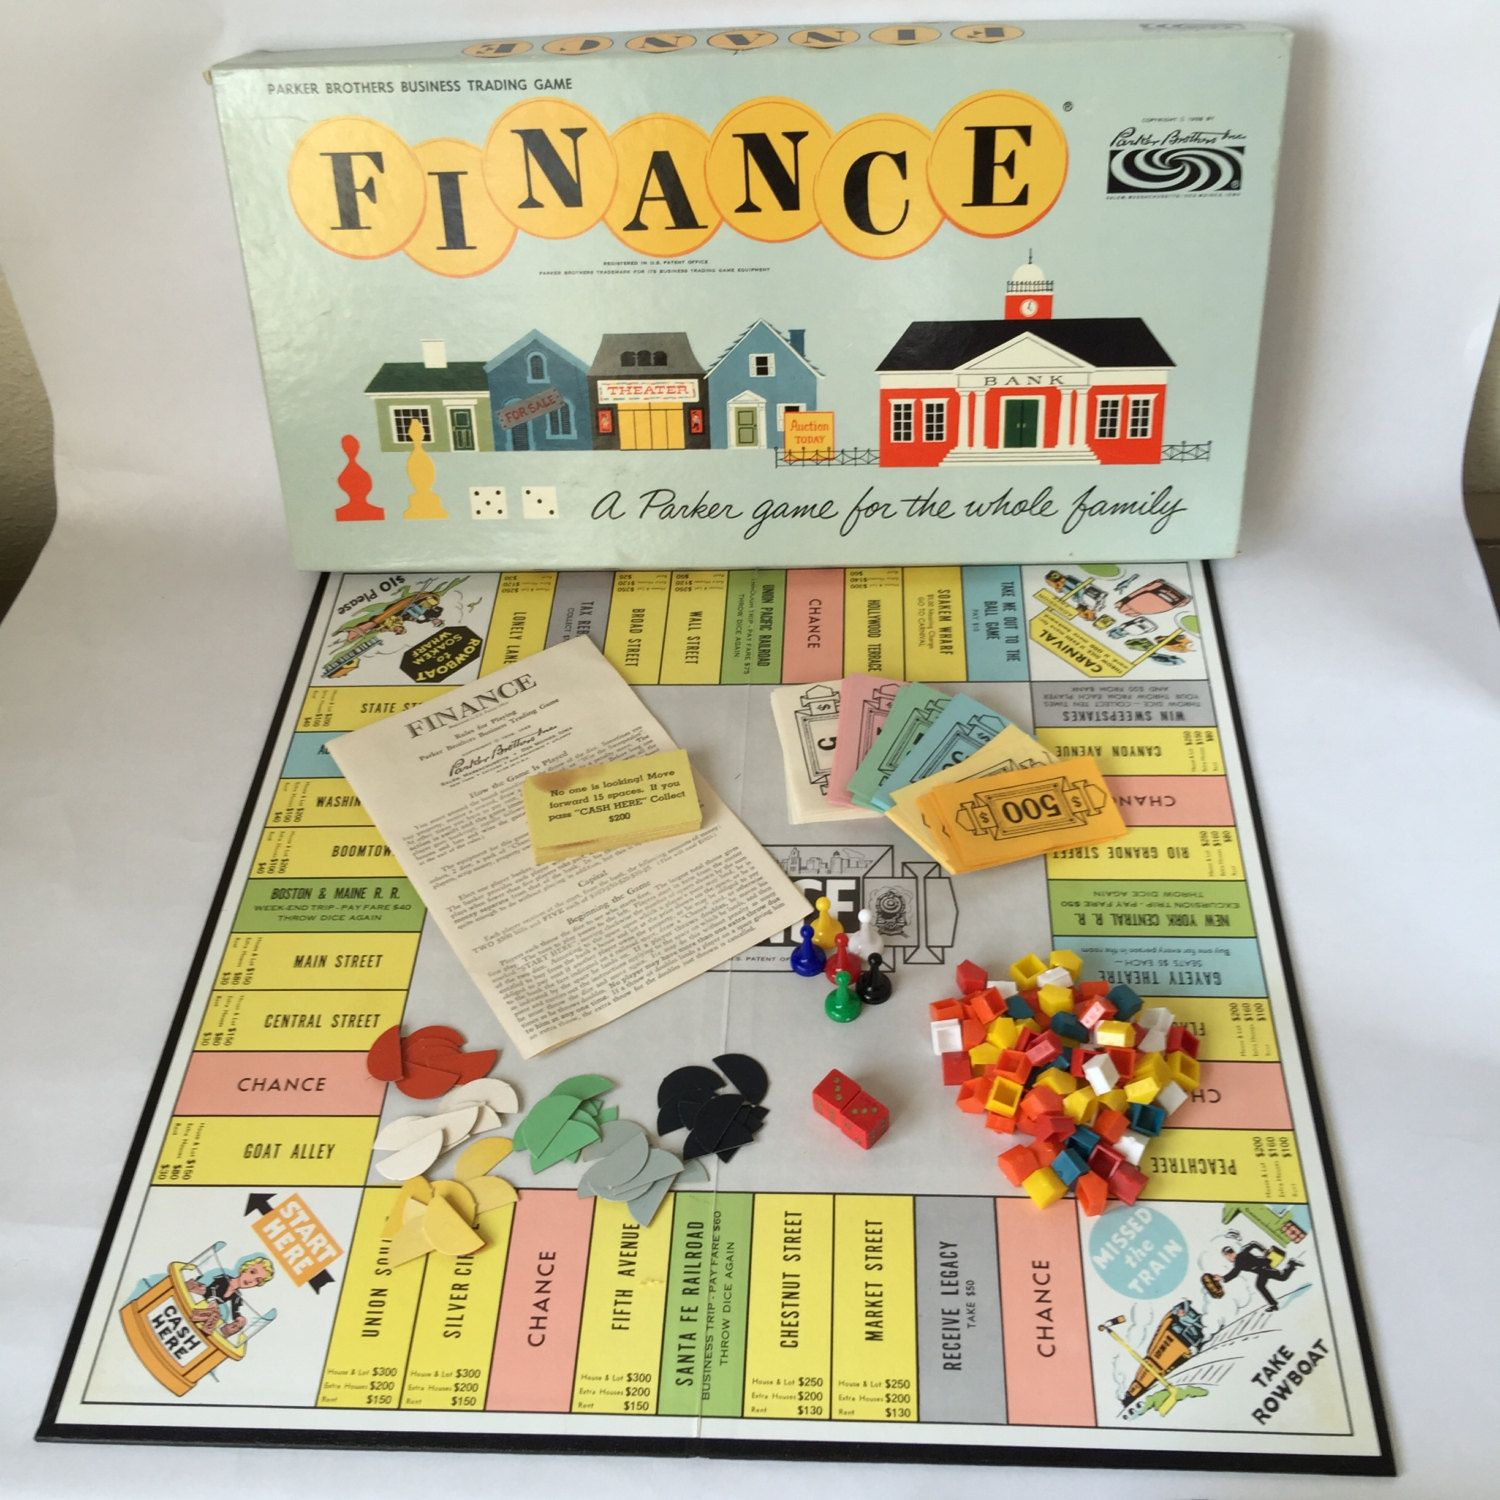 Finance board game vintage parker brothers 1962 fun family for Vintage sites like etsy